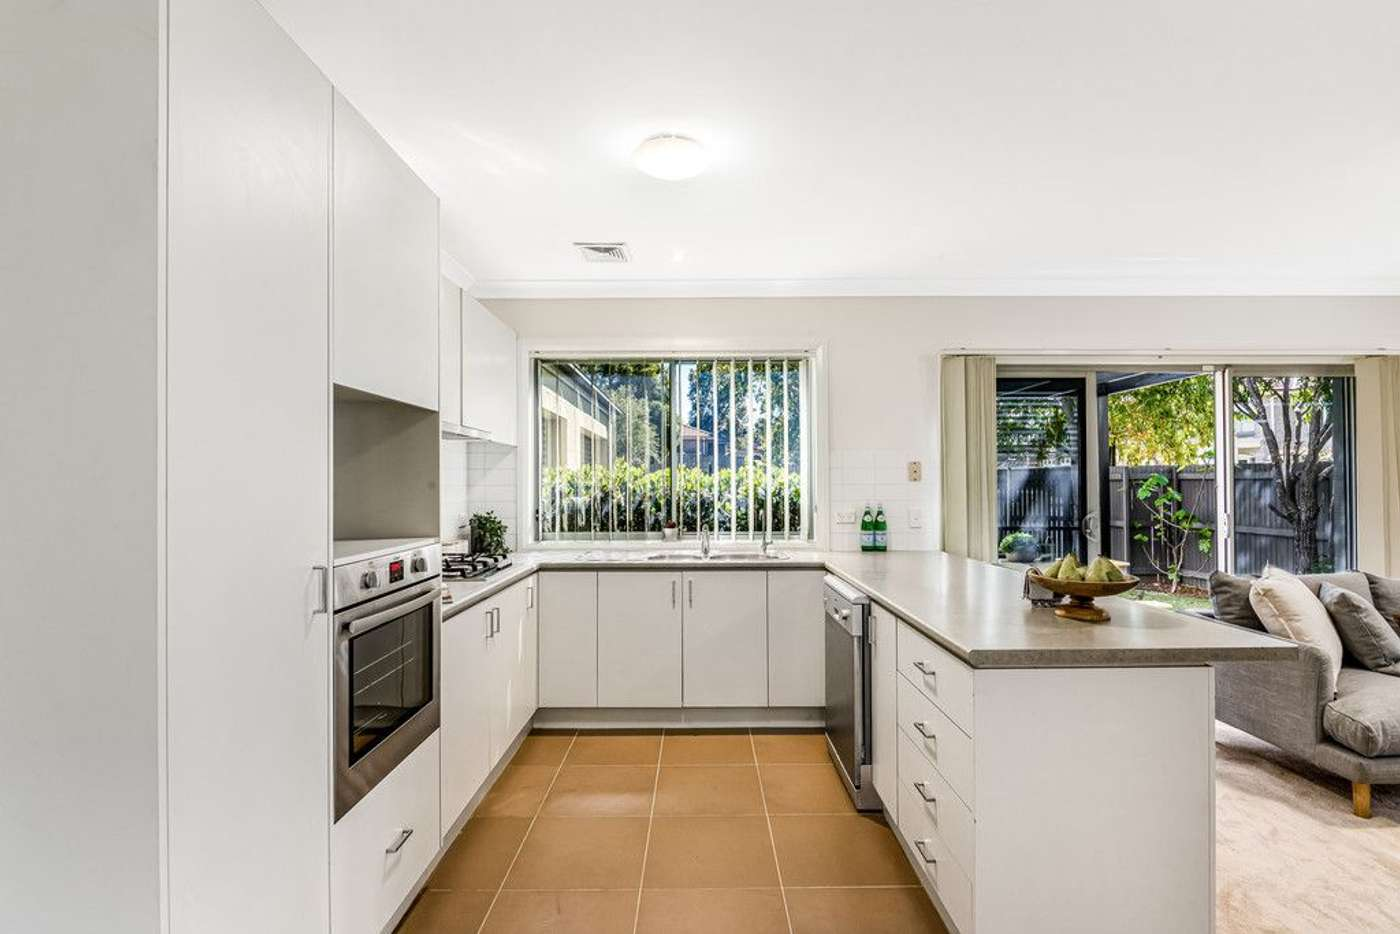 Fifth view of Homely house listing, 78 Stanhope Parkway, Stanhope Gardens NSW 2768